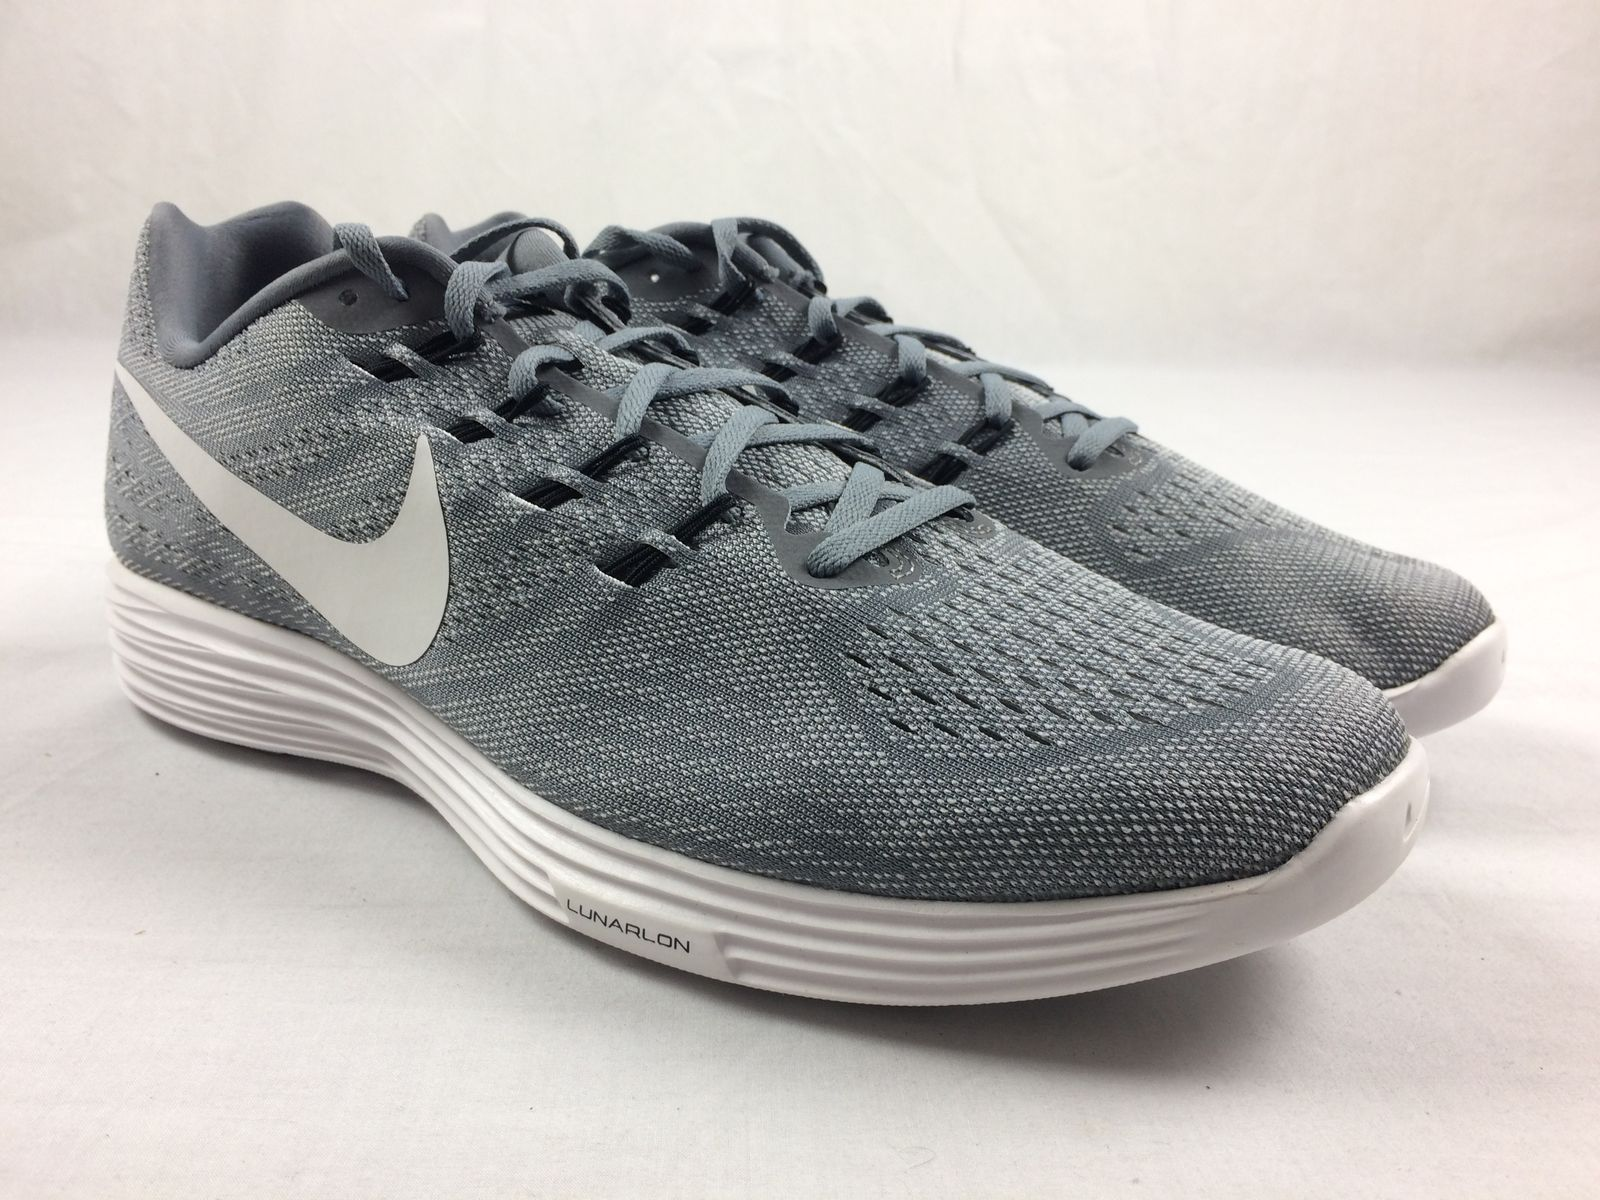 2b83256574c4 Details about NEW Nike Nike Lunar Tempo - Gray Running